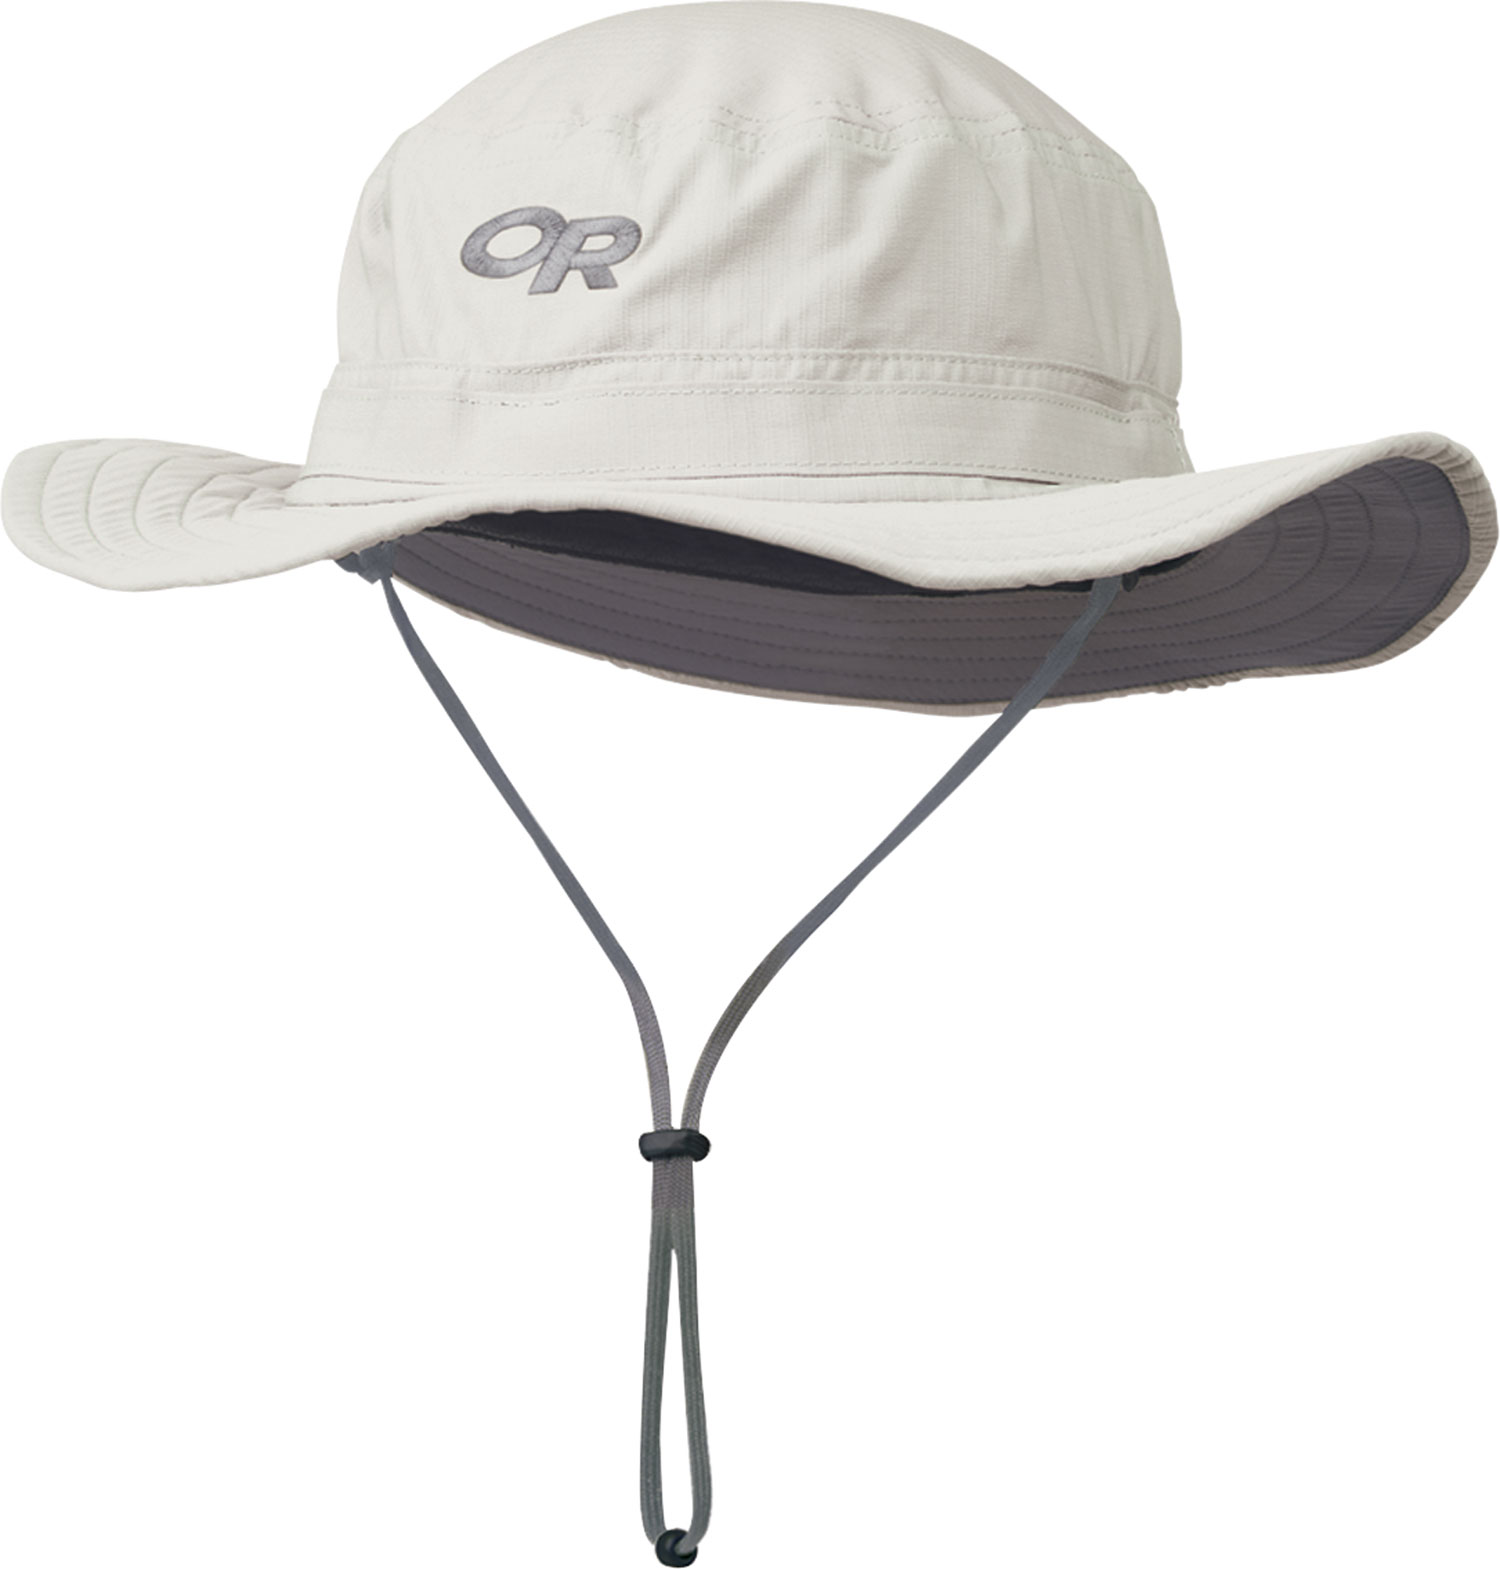 "Key Features of the Outdoor Research Helios Sun Hat: SolarShield construction Ripstop nylon/polyester blend; UPF 50+ Foam-stiffened brim oats TransAction headband External drawcord adjustment Removable chin cord with cordlock Brim: 2 3/4""/ 7cm - $36.00"